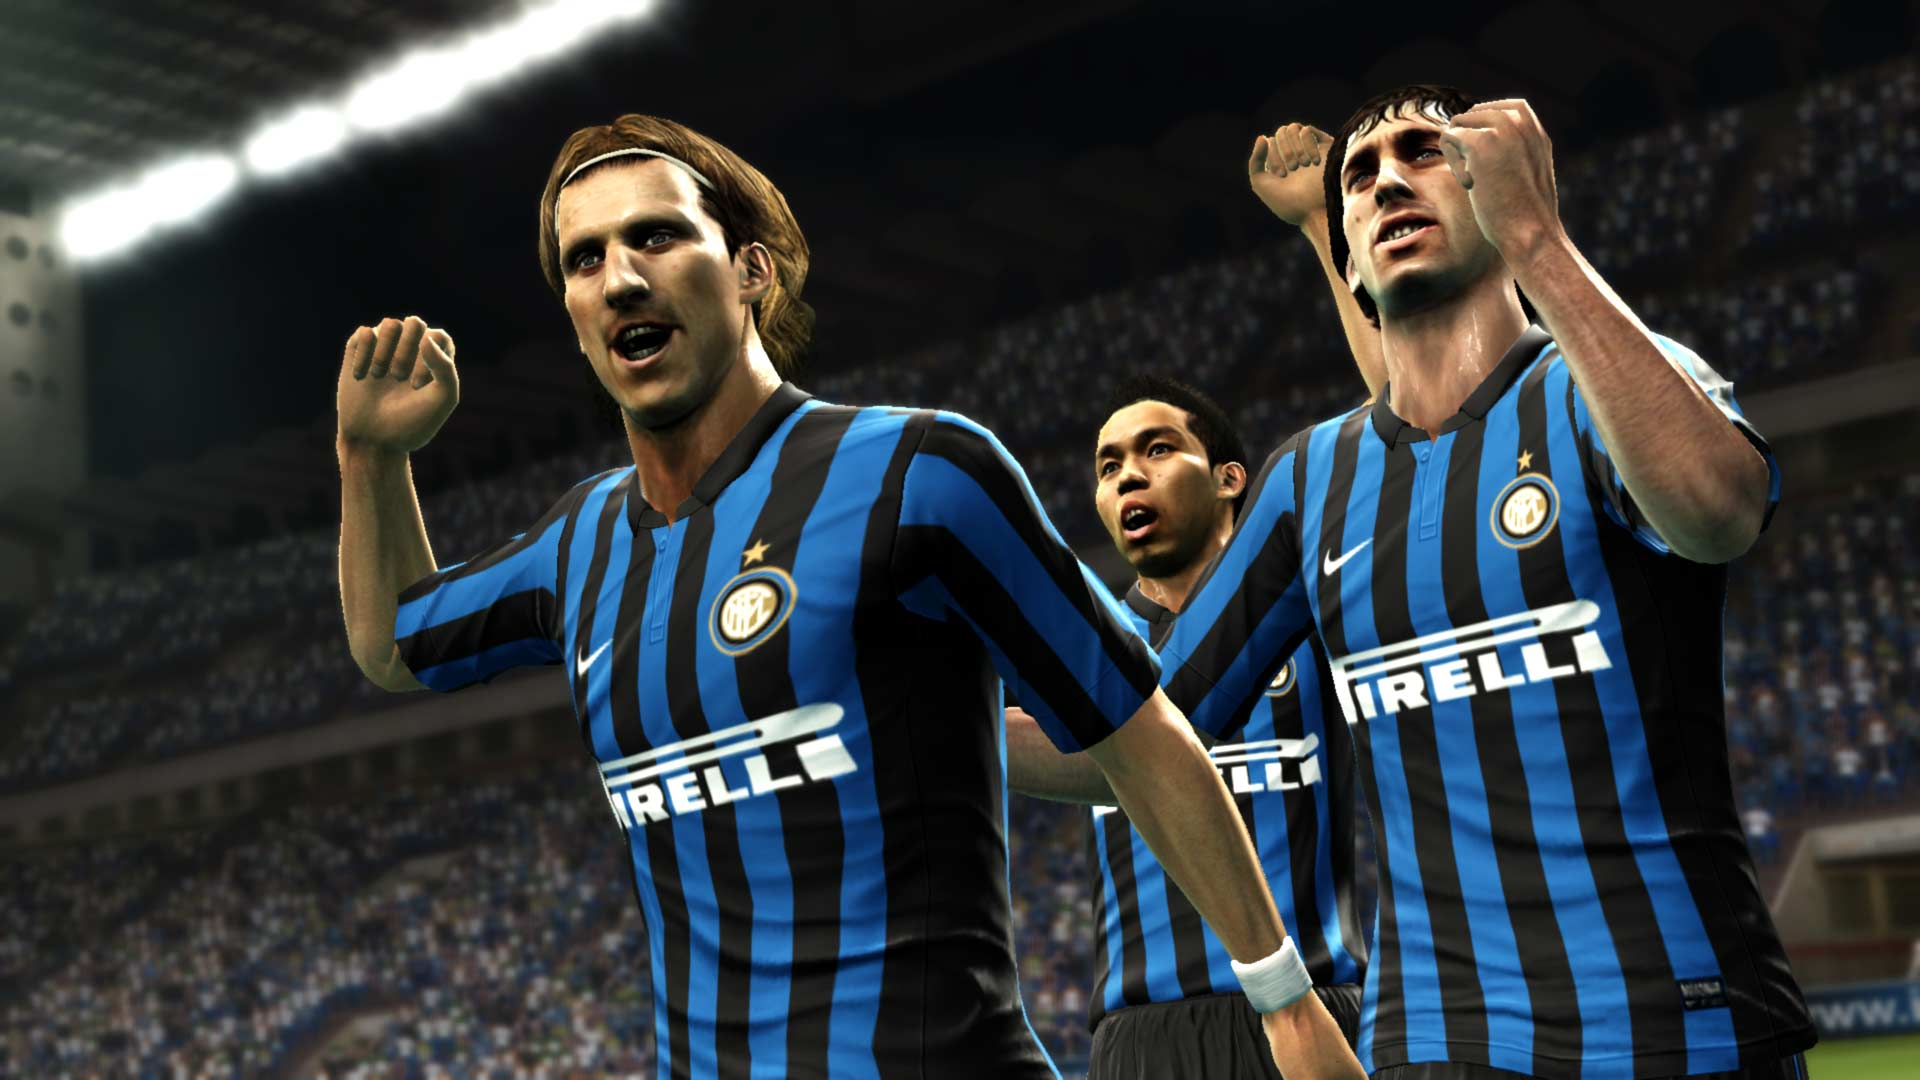 Another season, another version of PES. So is Pro Evolution Soccer 2012 the game to pinch the football crown back from FIFA? It depends on what you're looking for really. […]